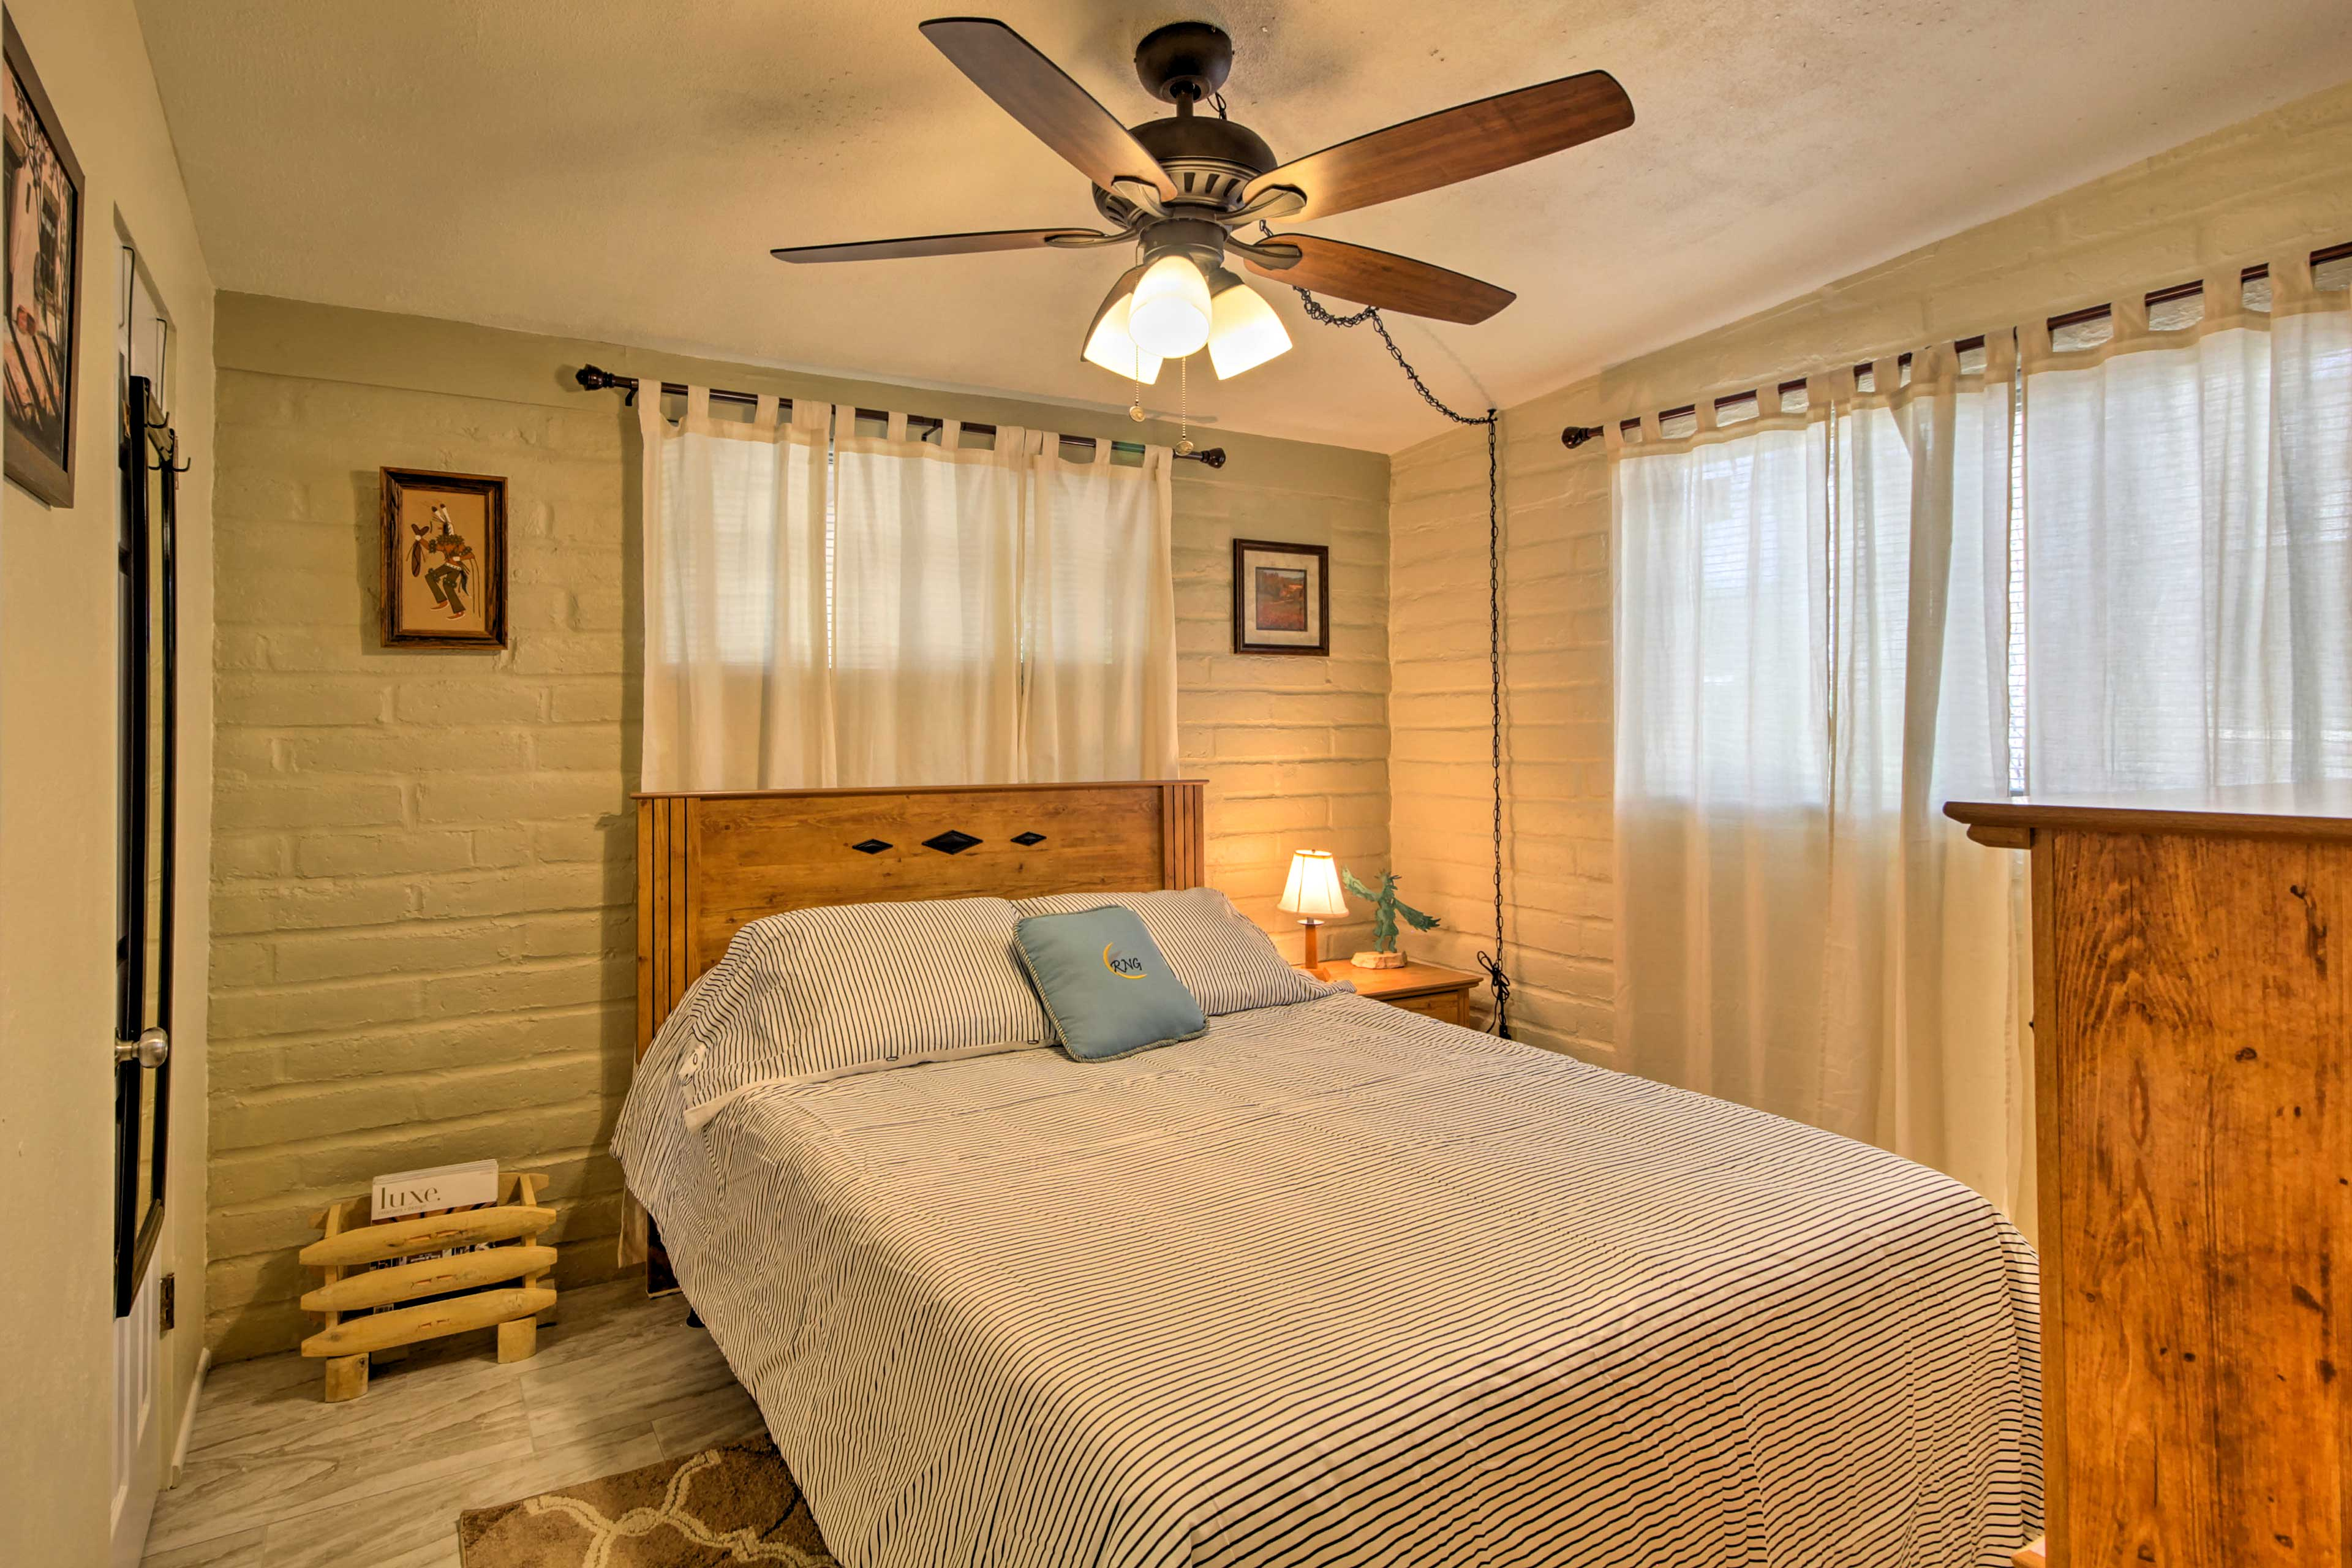 Wrap up in the soft linen's of this full bed.